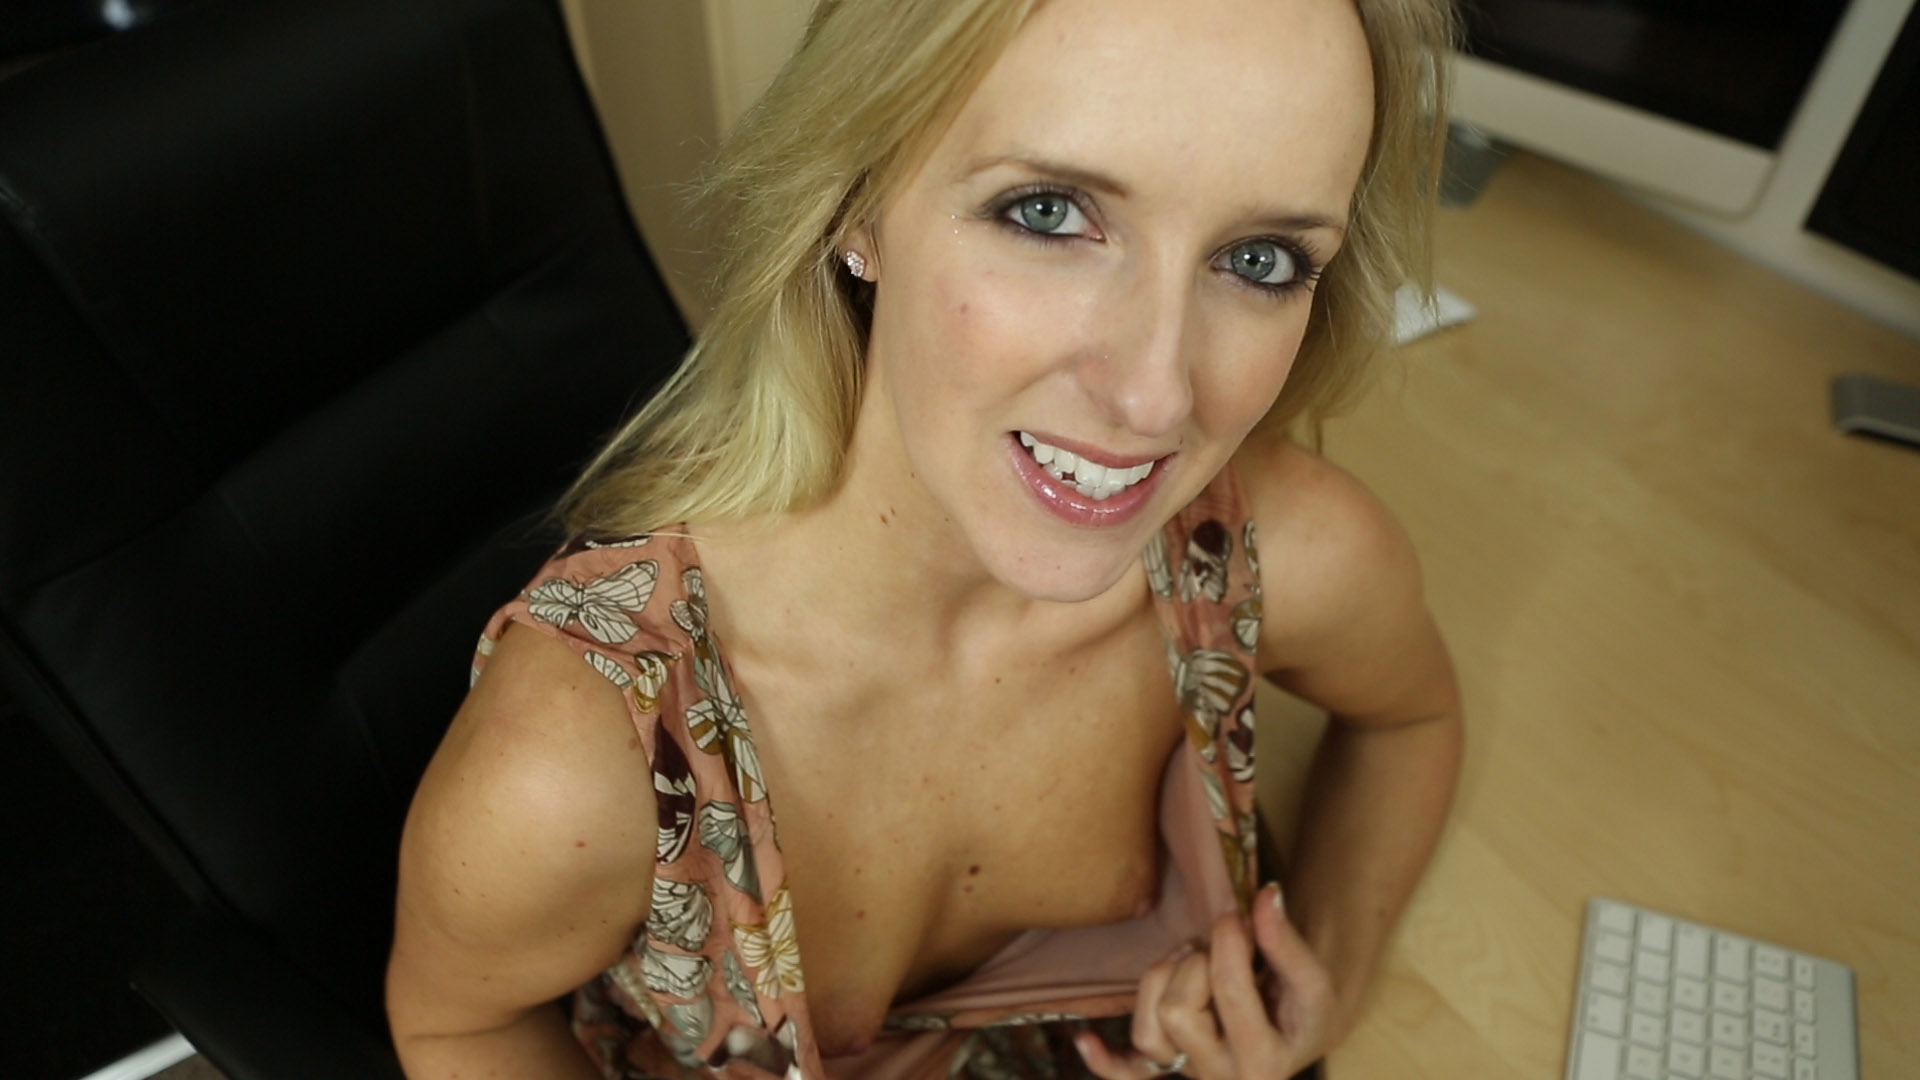 Anna joy is a horny secretary fingering her wet pussy 3